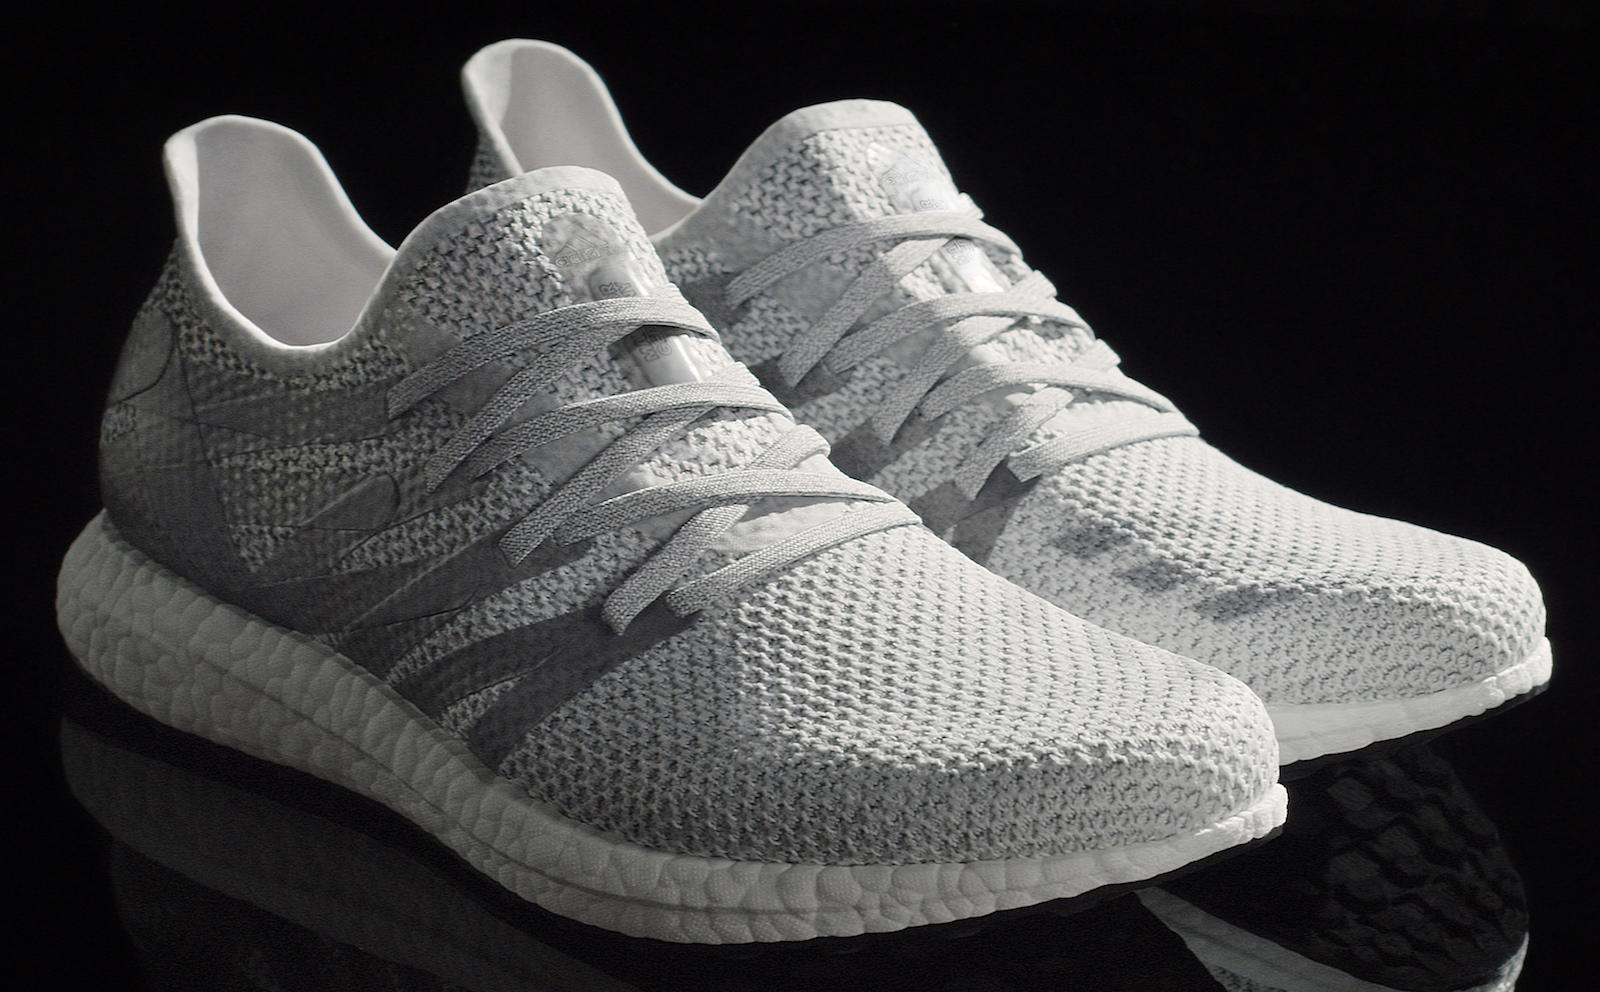 mezcla Silenciosamente Unirse  Adidas shows off the first shoe made at its robot factory | Engadget